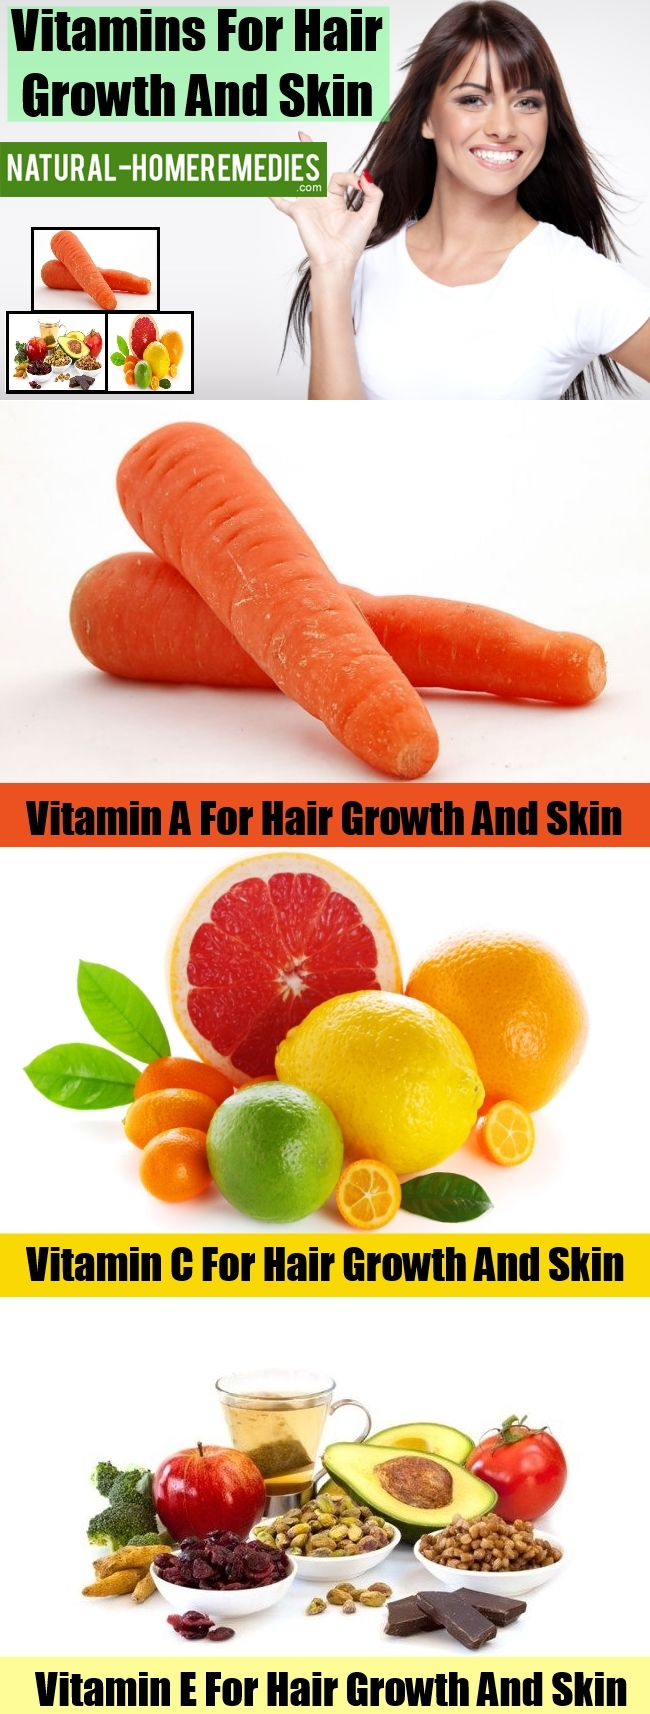 Vitamins For Hair Growth And Skin